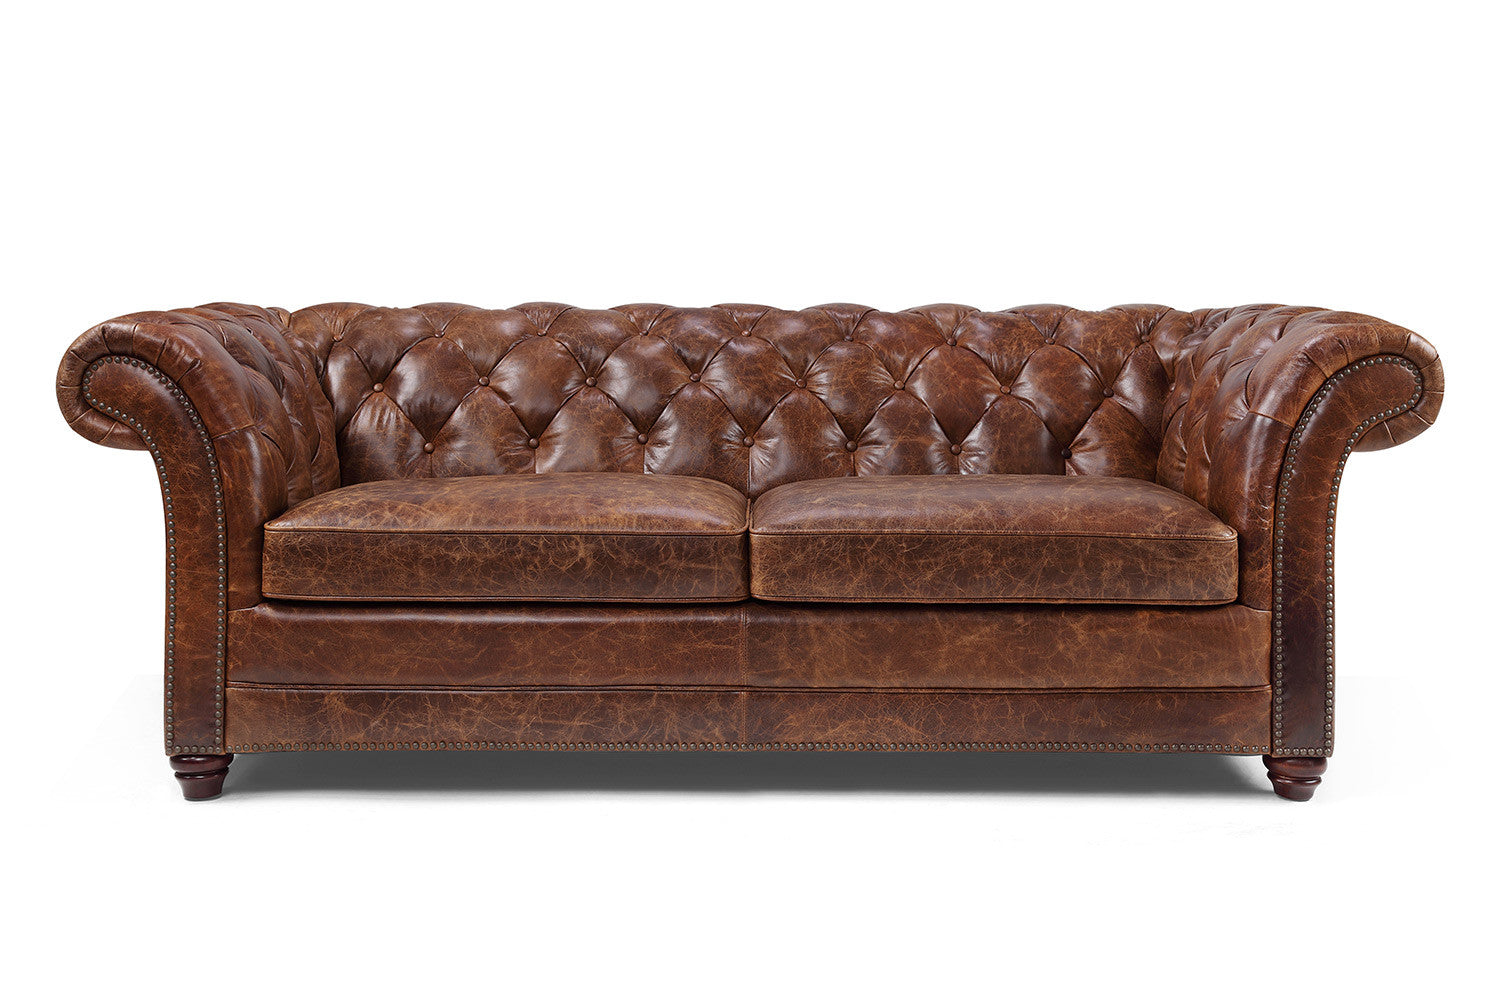 Canap chesterfield en cuir westminster rose moore for Chesterfield canape